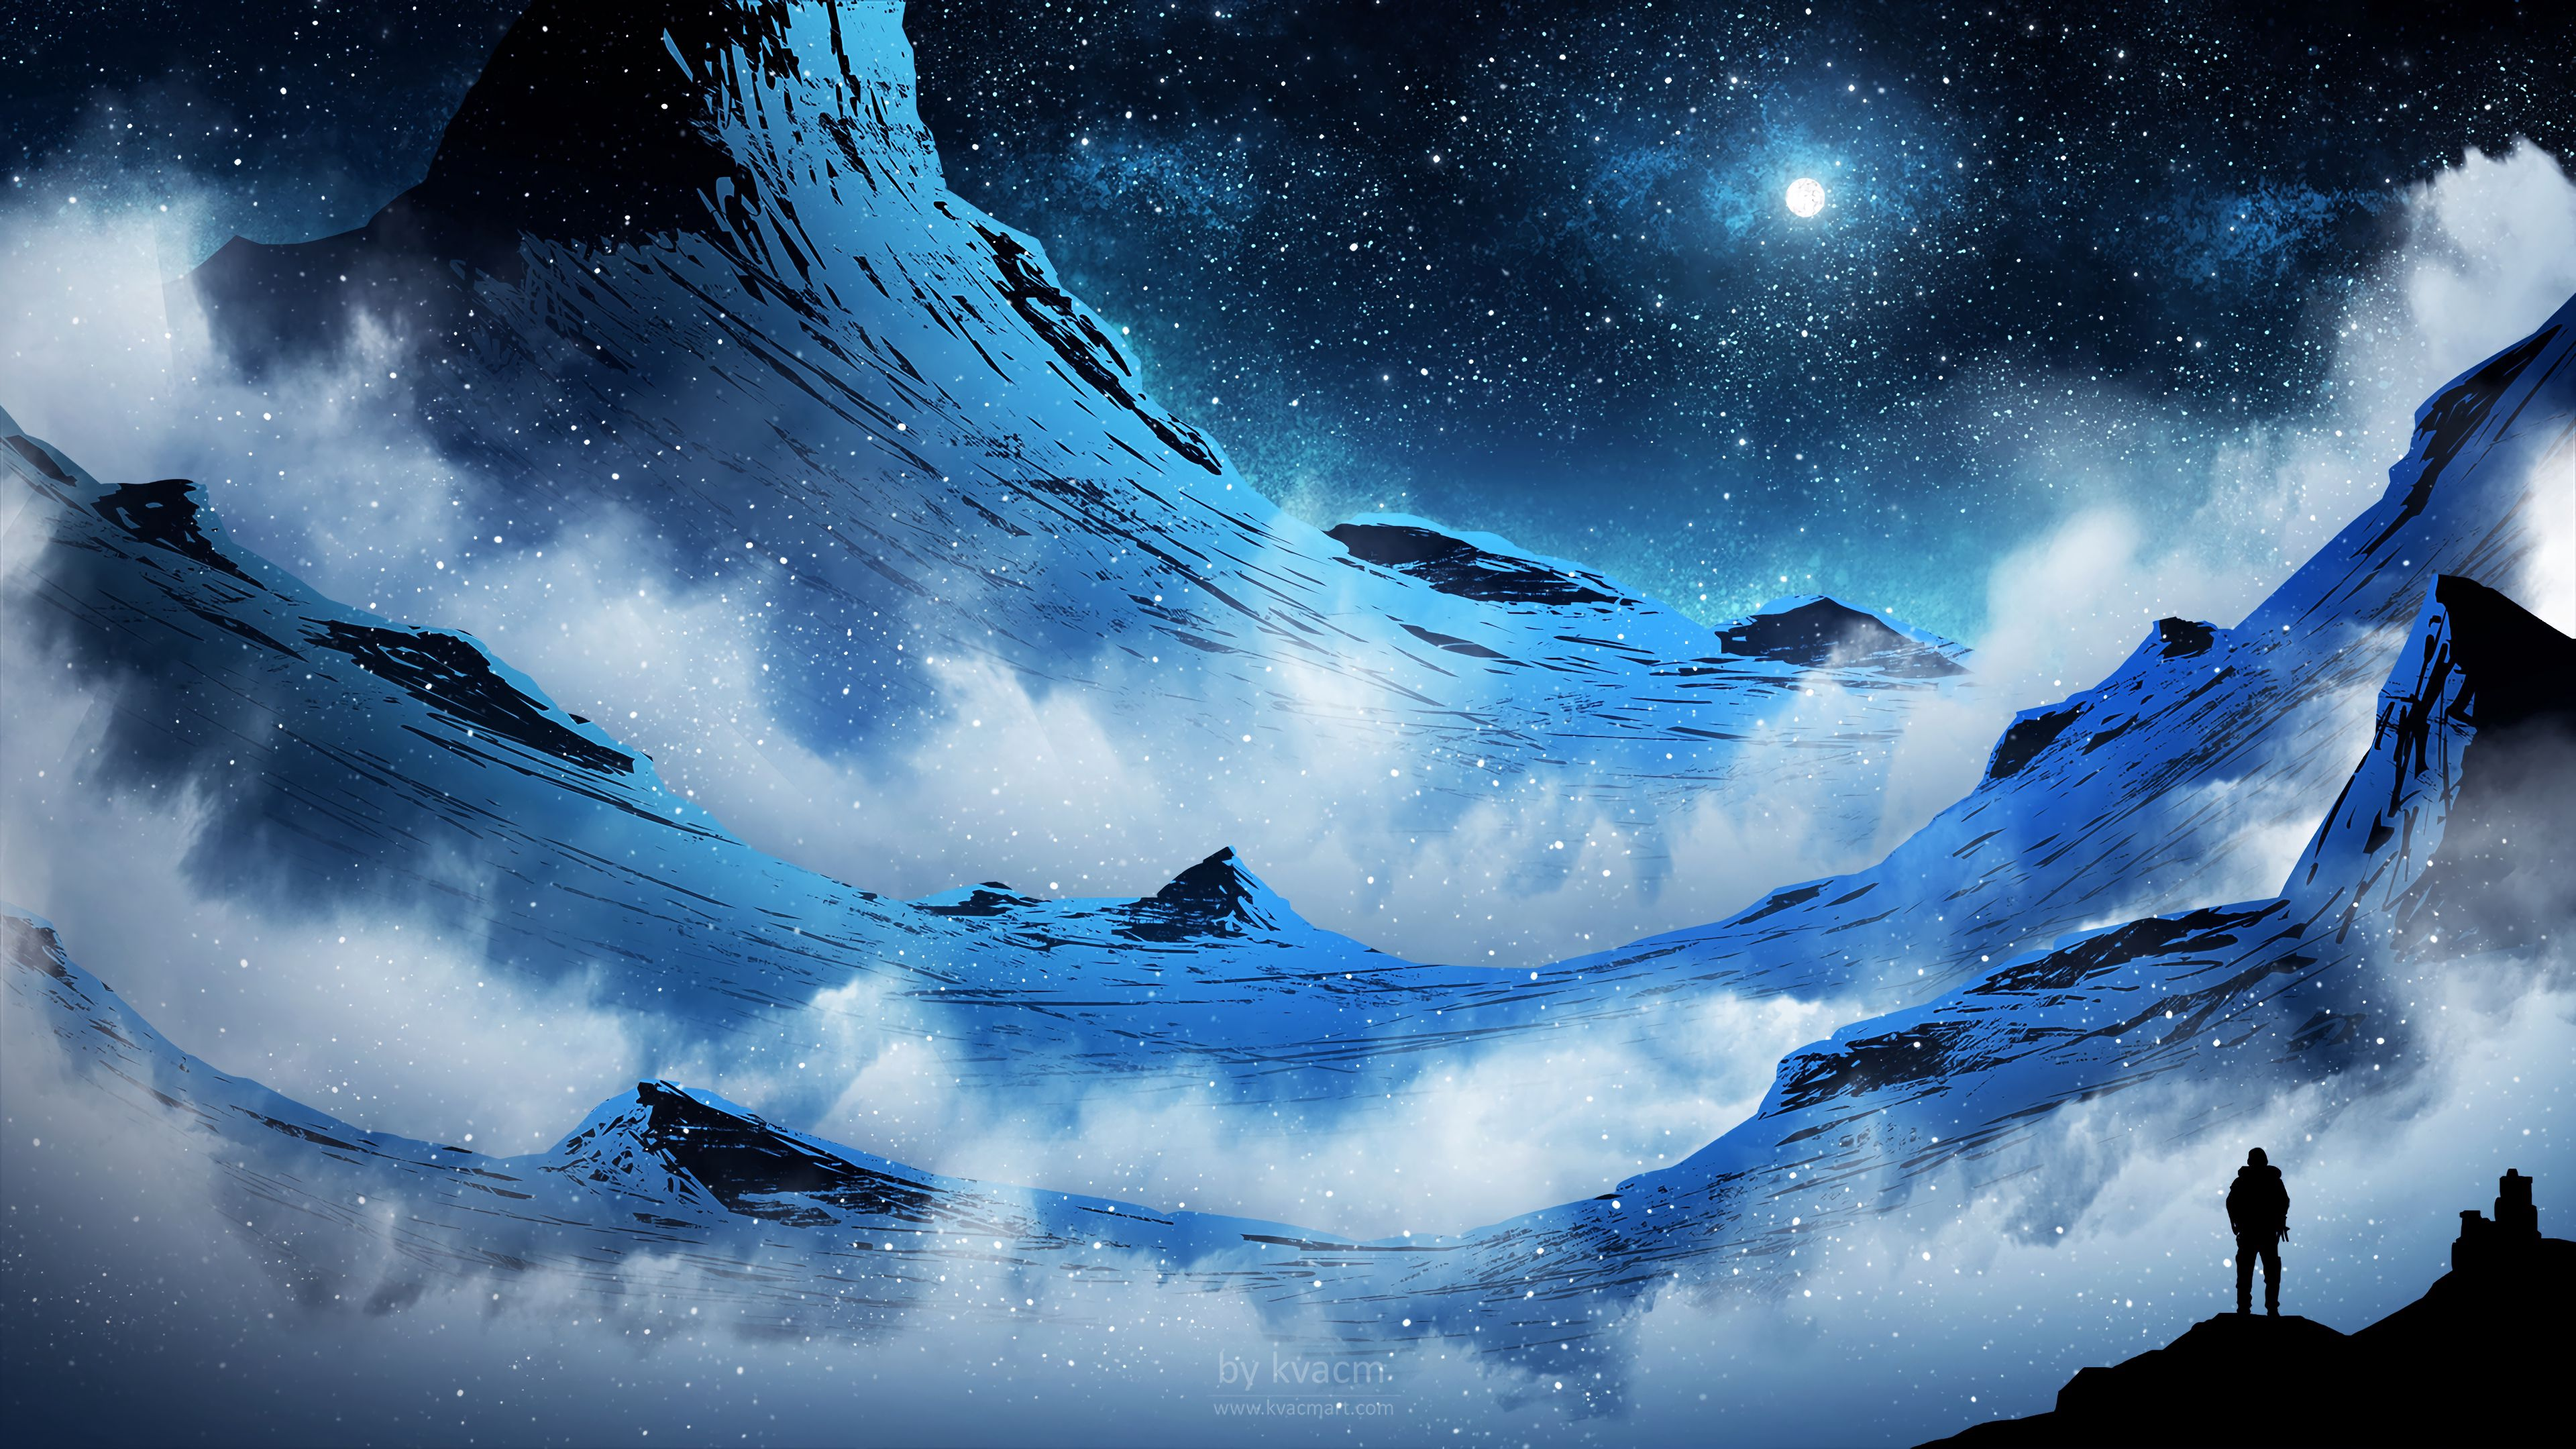 76583 download wallpaper Art, Night, Snowstorm, Silhouette, Moon, Moonlight, Mountains screensavers and pictures for free